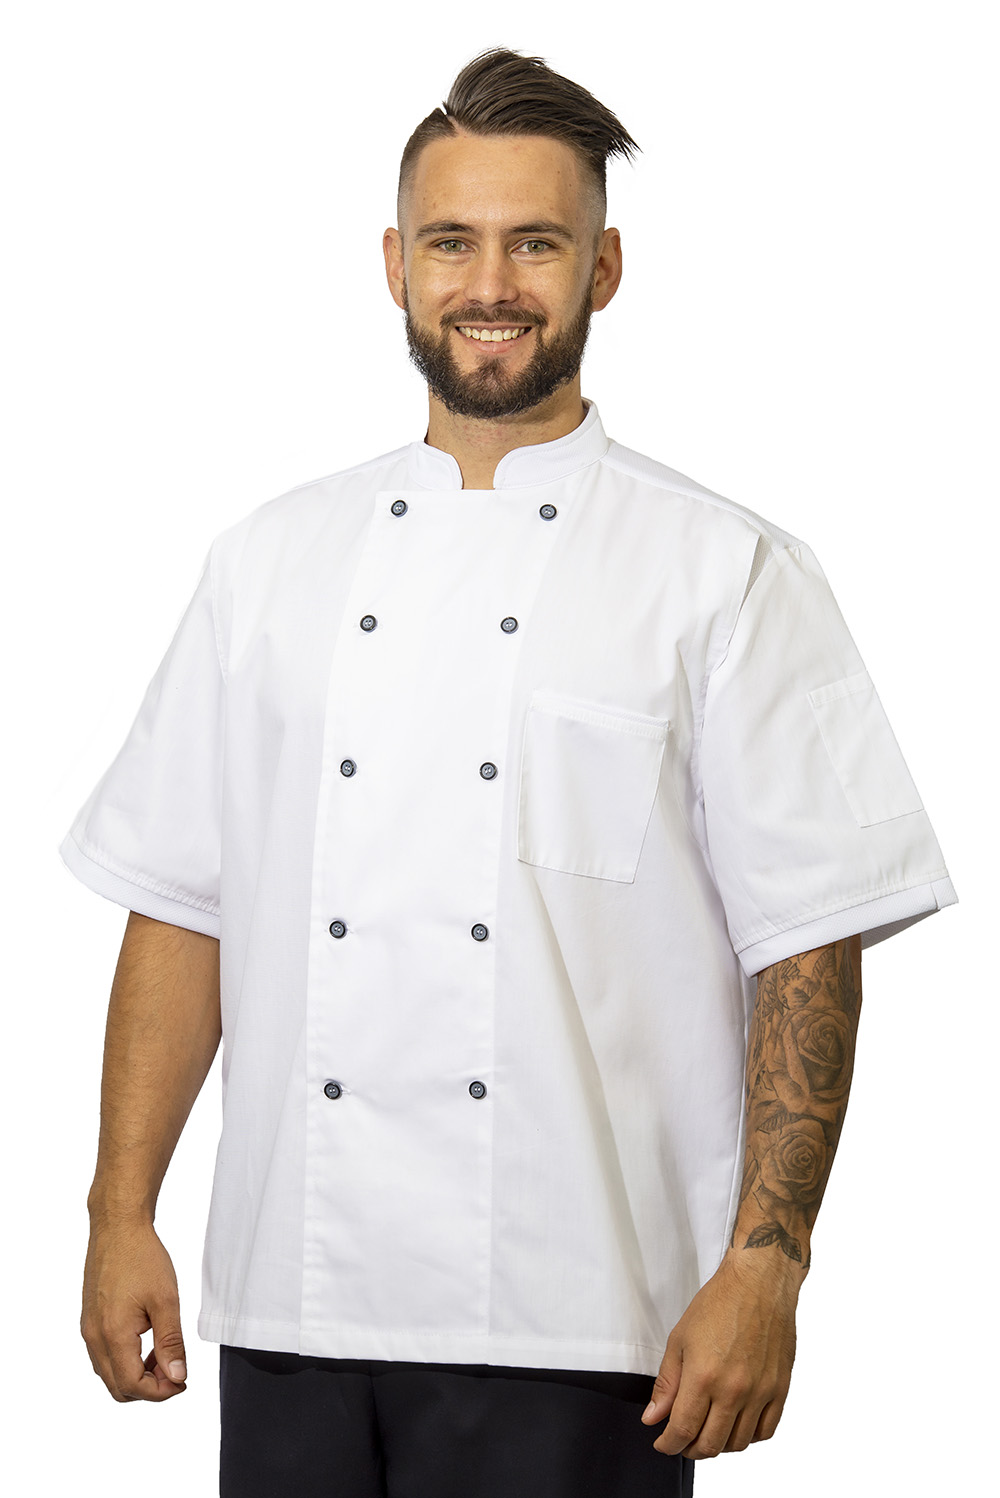 white birdseye chef jacket